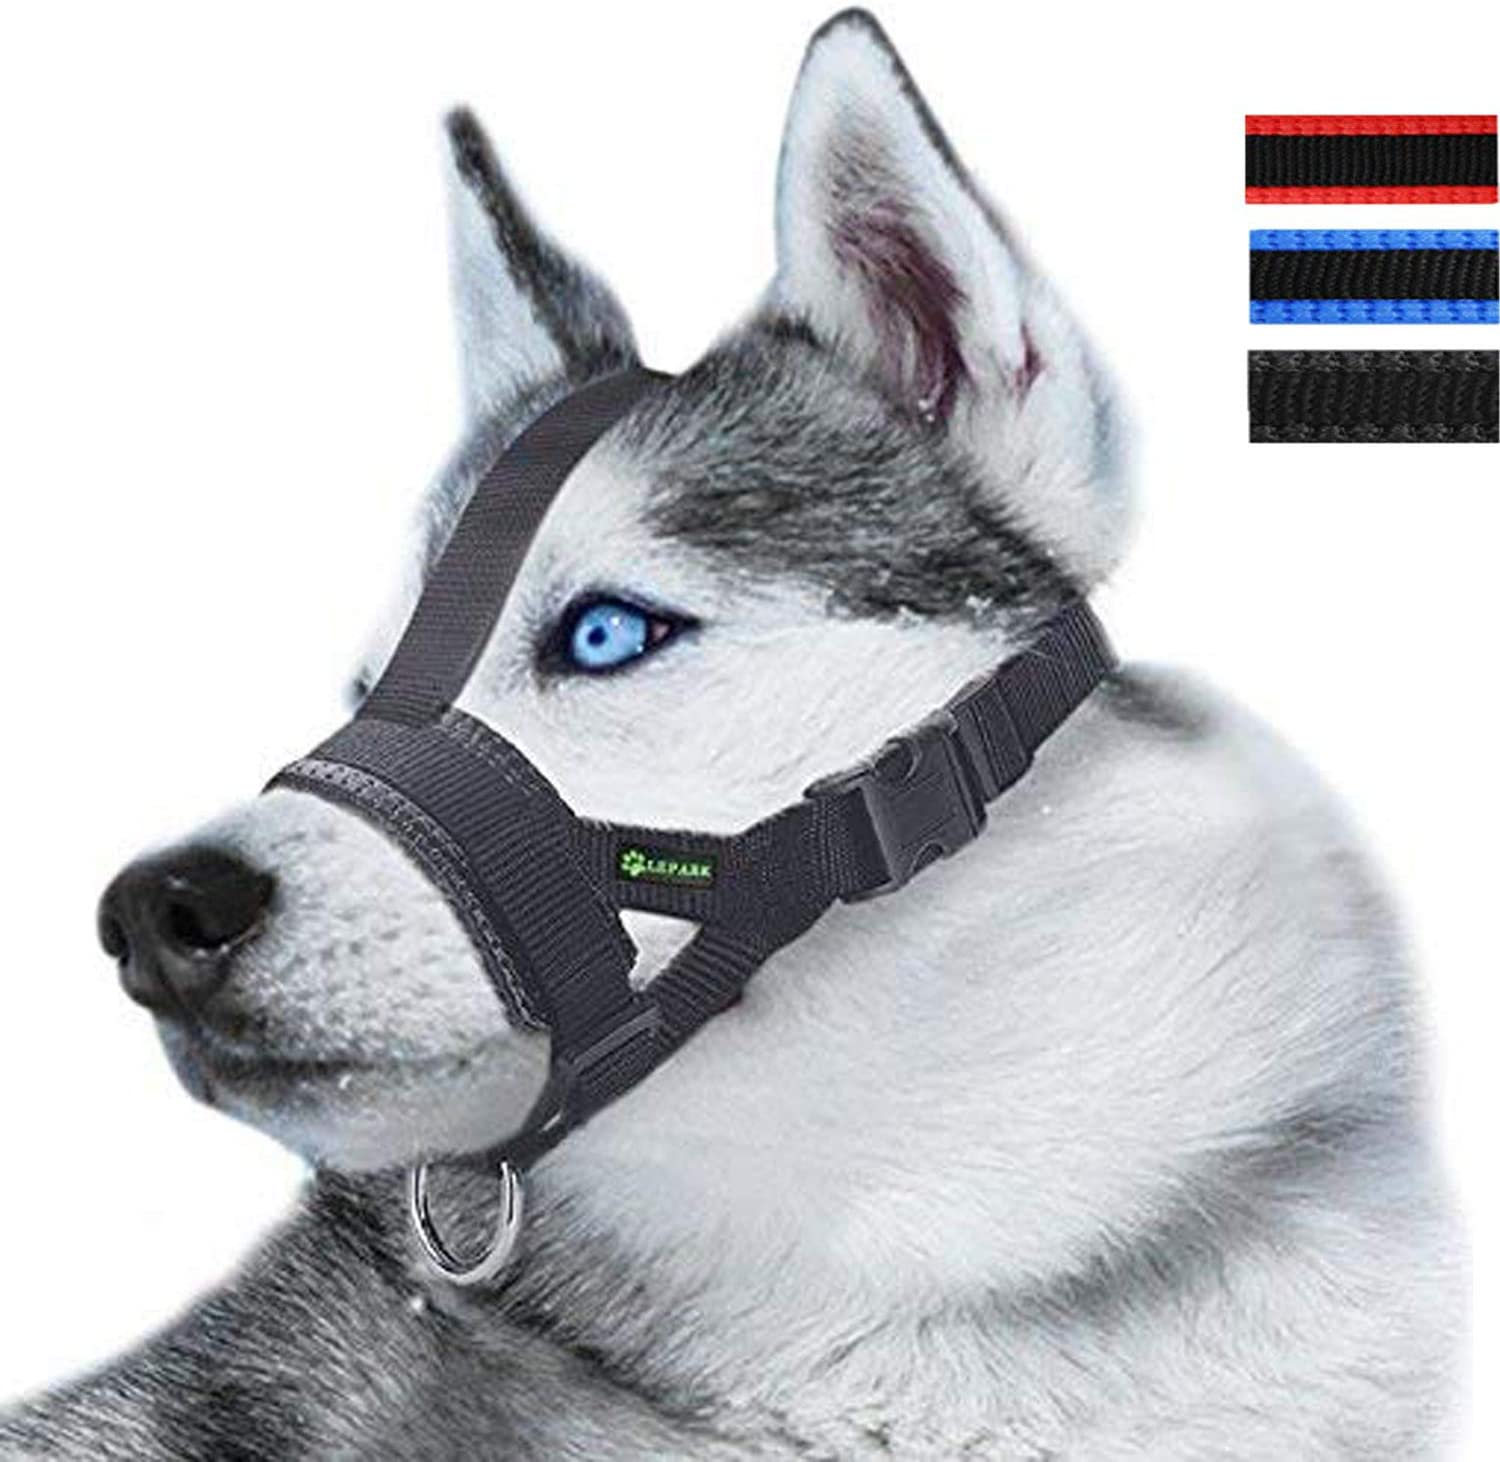 Nylon Dog Muzzle Challenge the lowest price Nashville-Davidson Mall for Small Medium Biting Large Prevent Dogs from